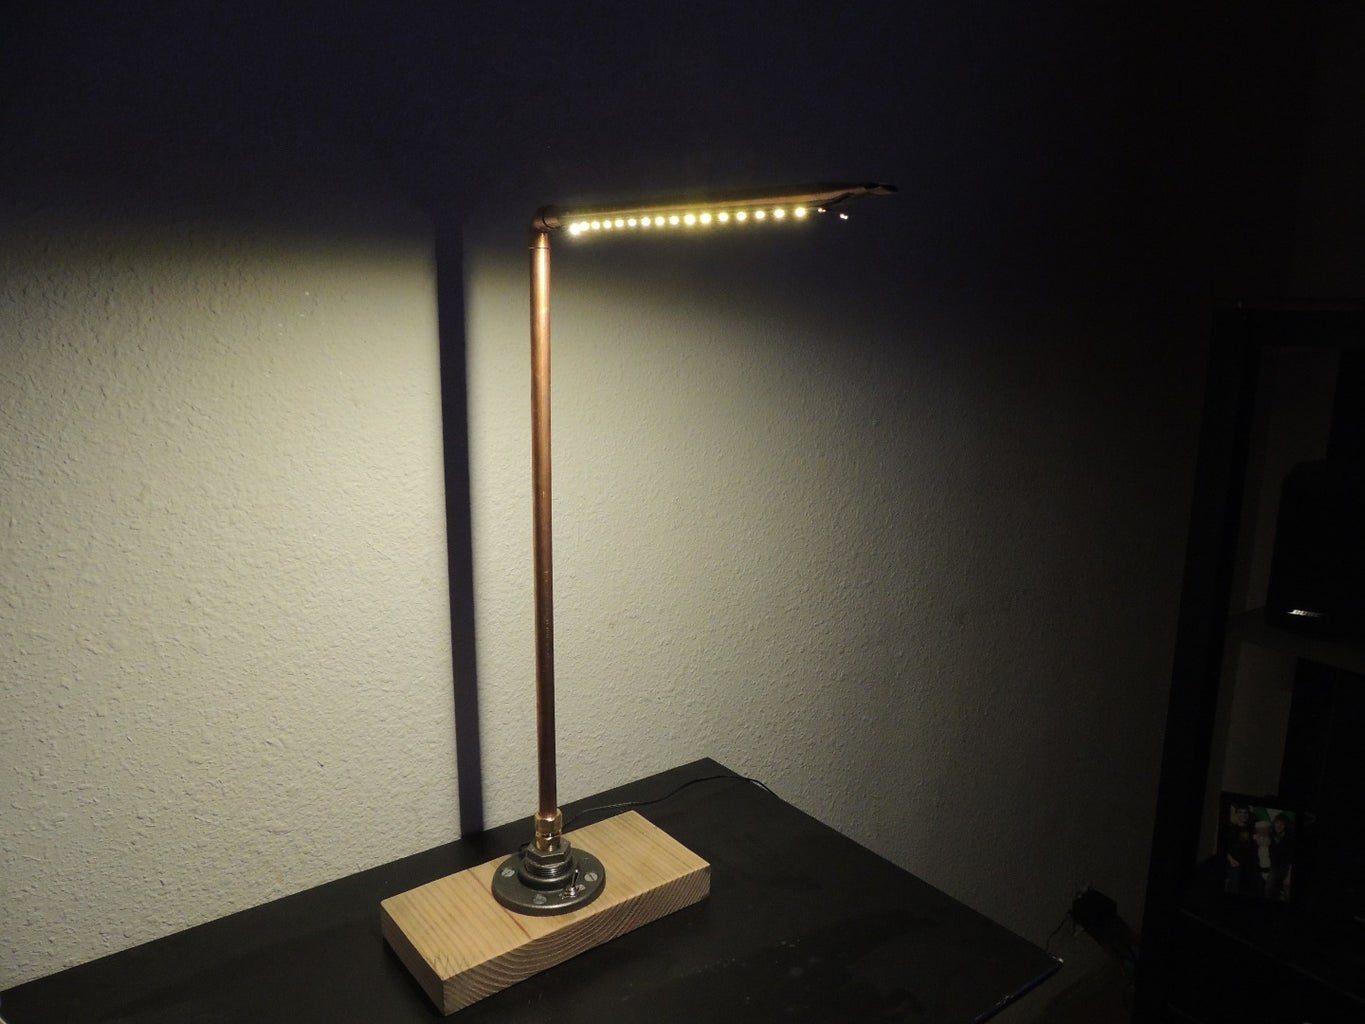 DIY Lamp With LED Strips and Plumbing Parts